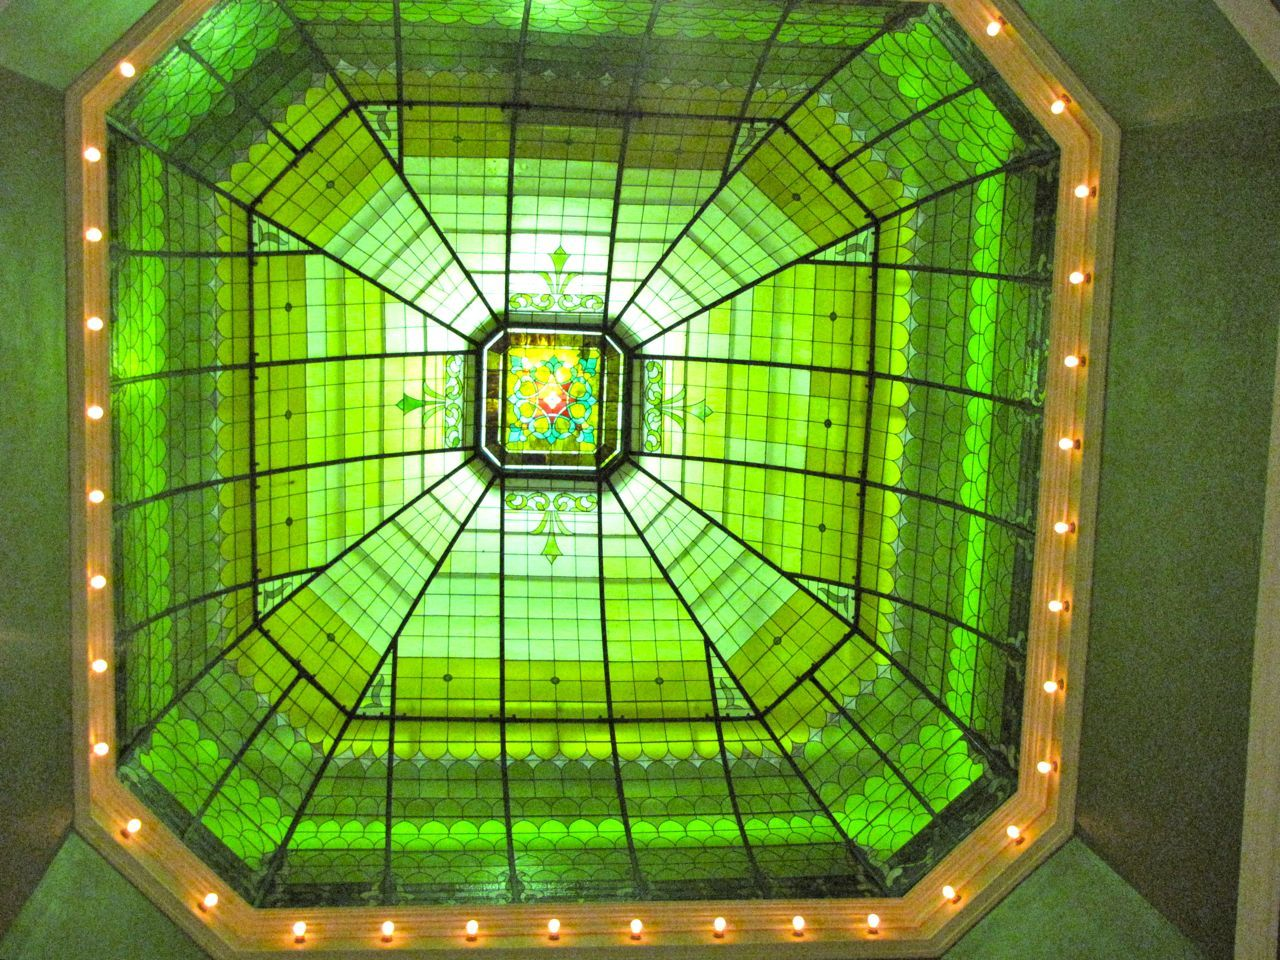 The courthouse held a celebration in December to mark the restoration of the stained-glass dome.